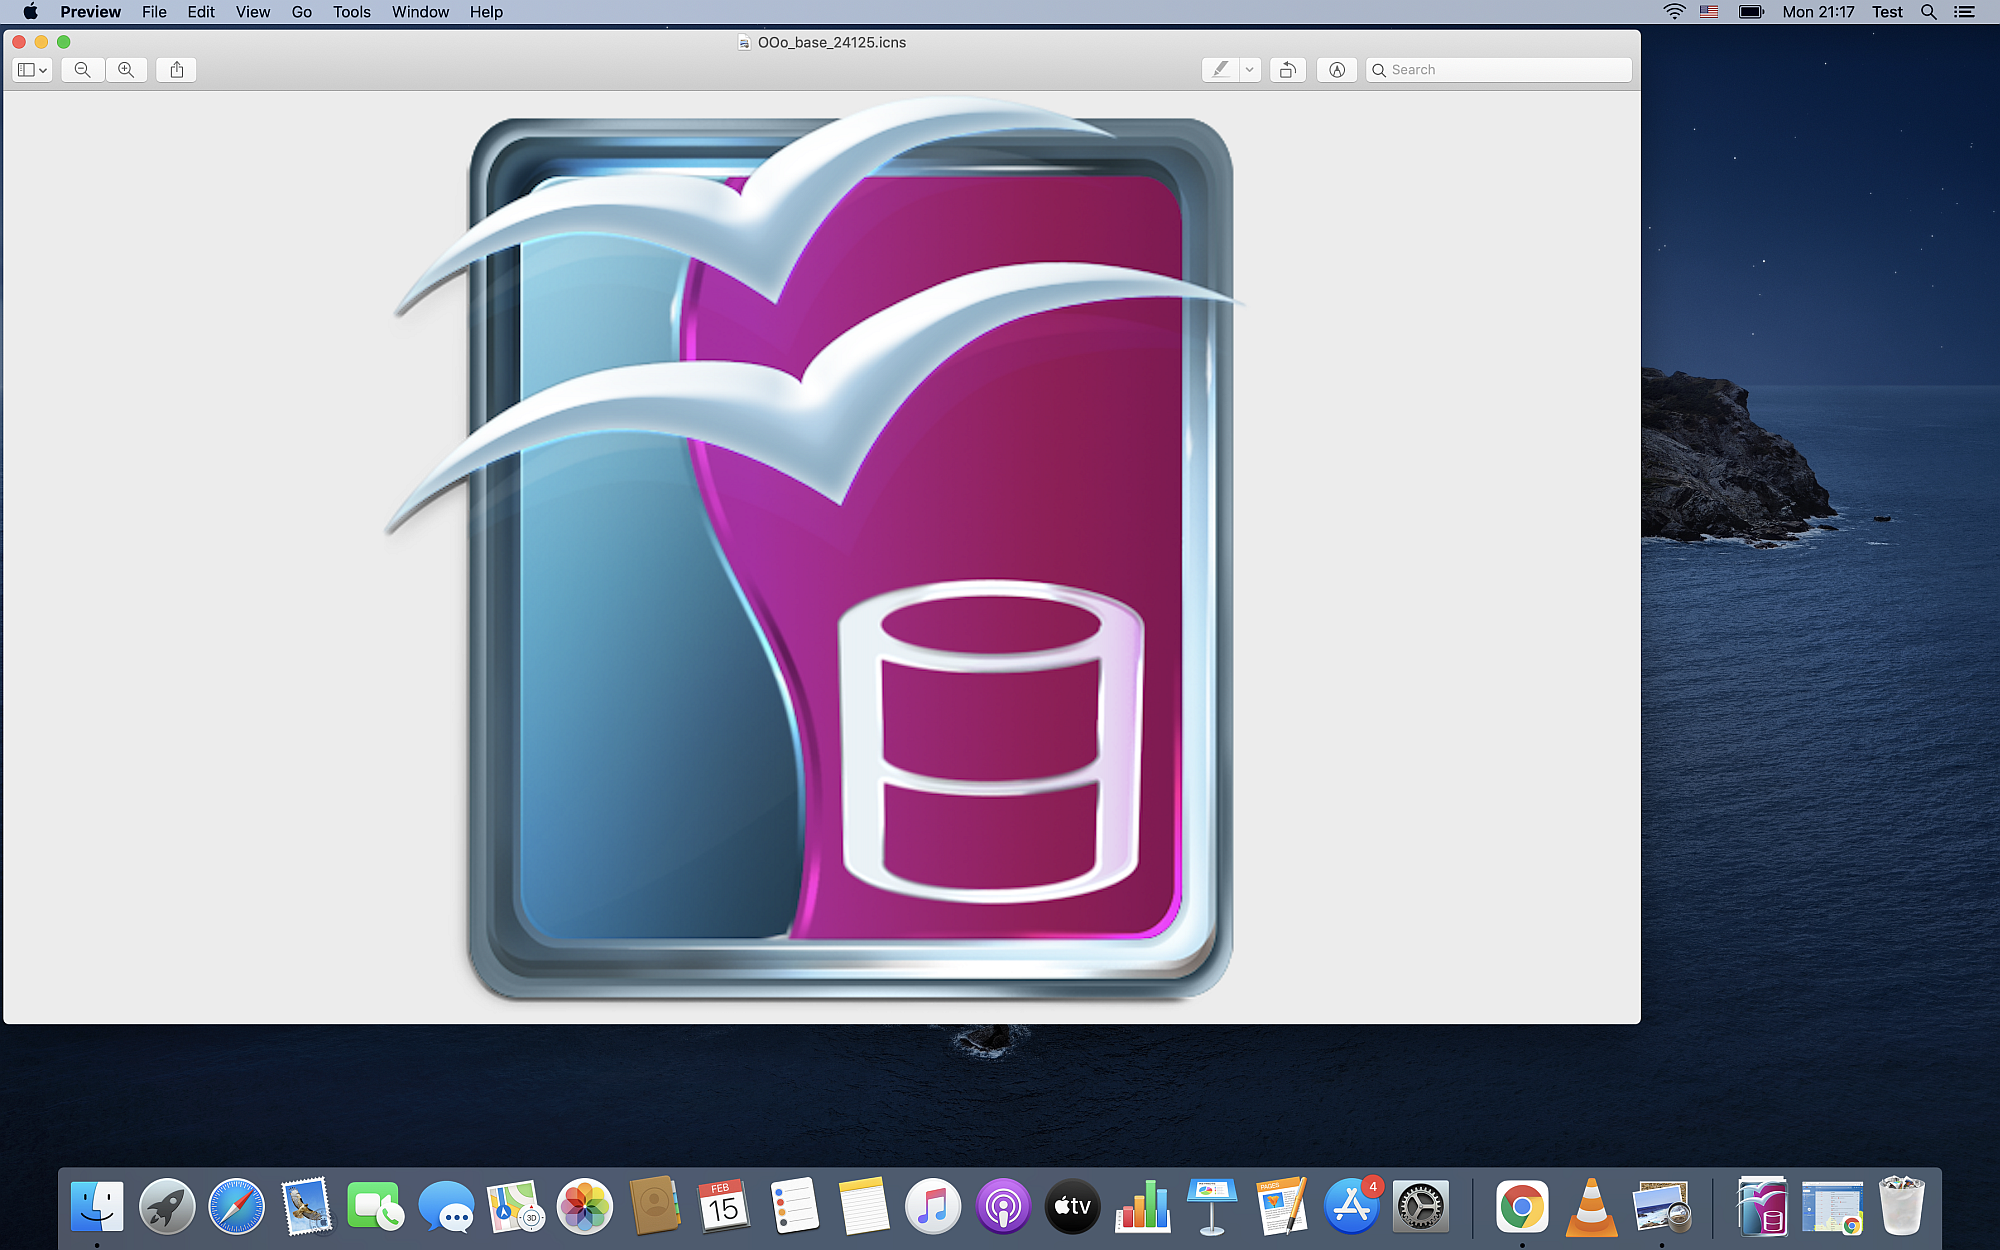 How to open an ICNS file on Mac OS with Apple Preview?